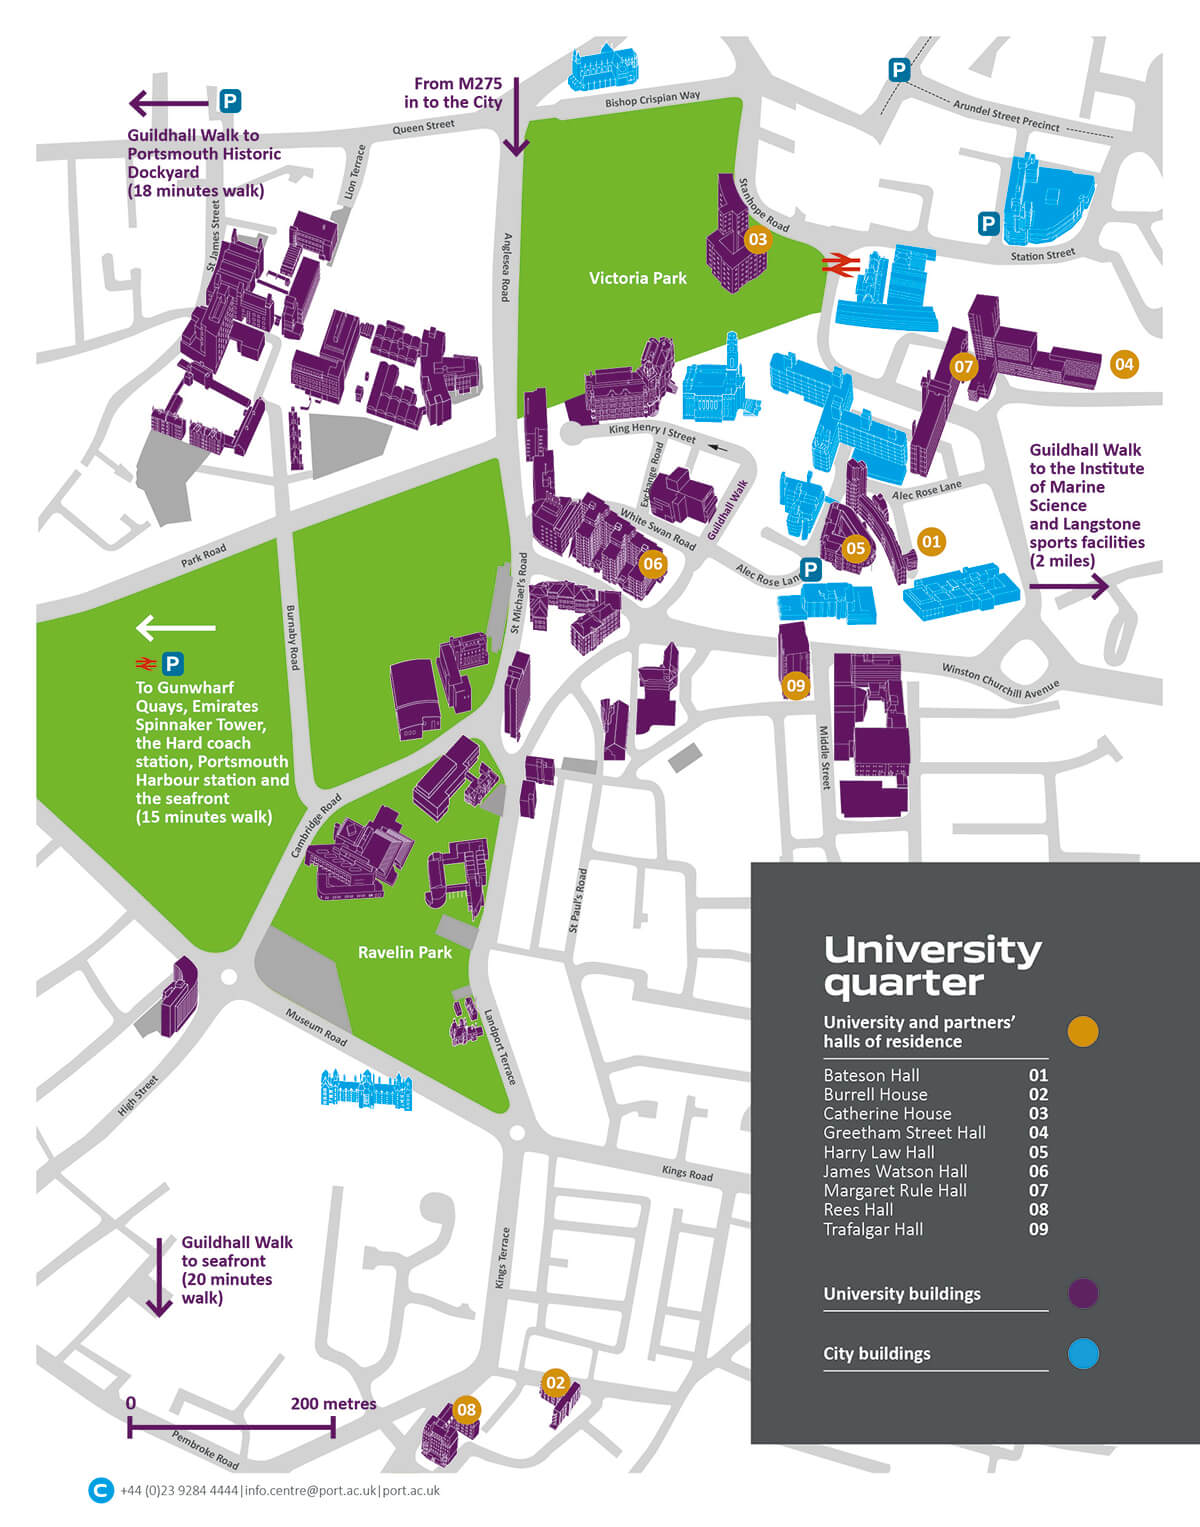 University of Portsmouth Quarter full campus map